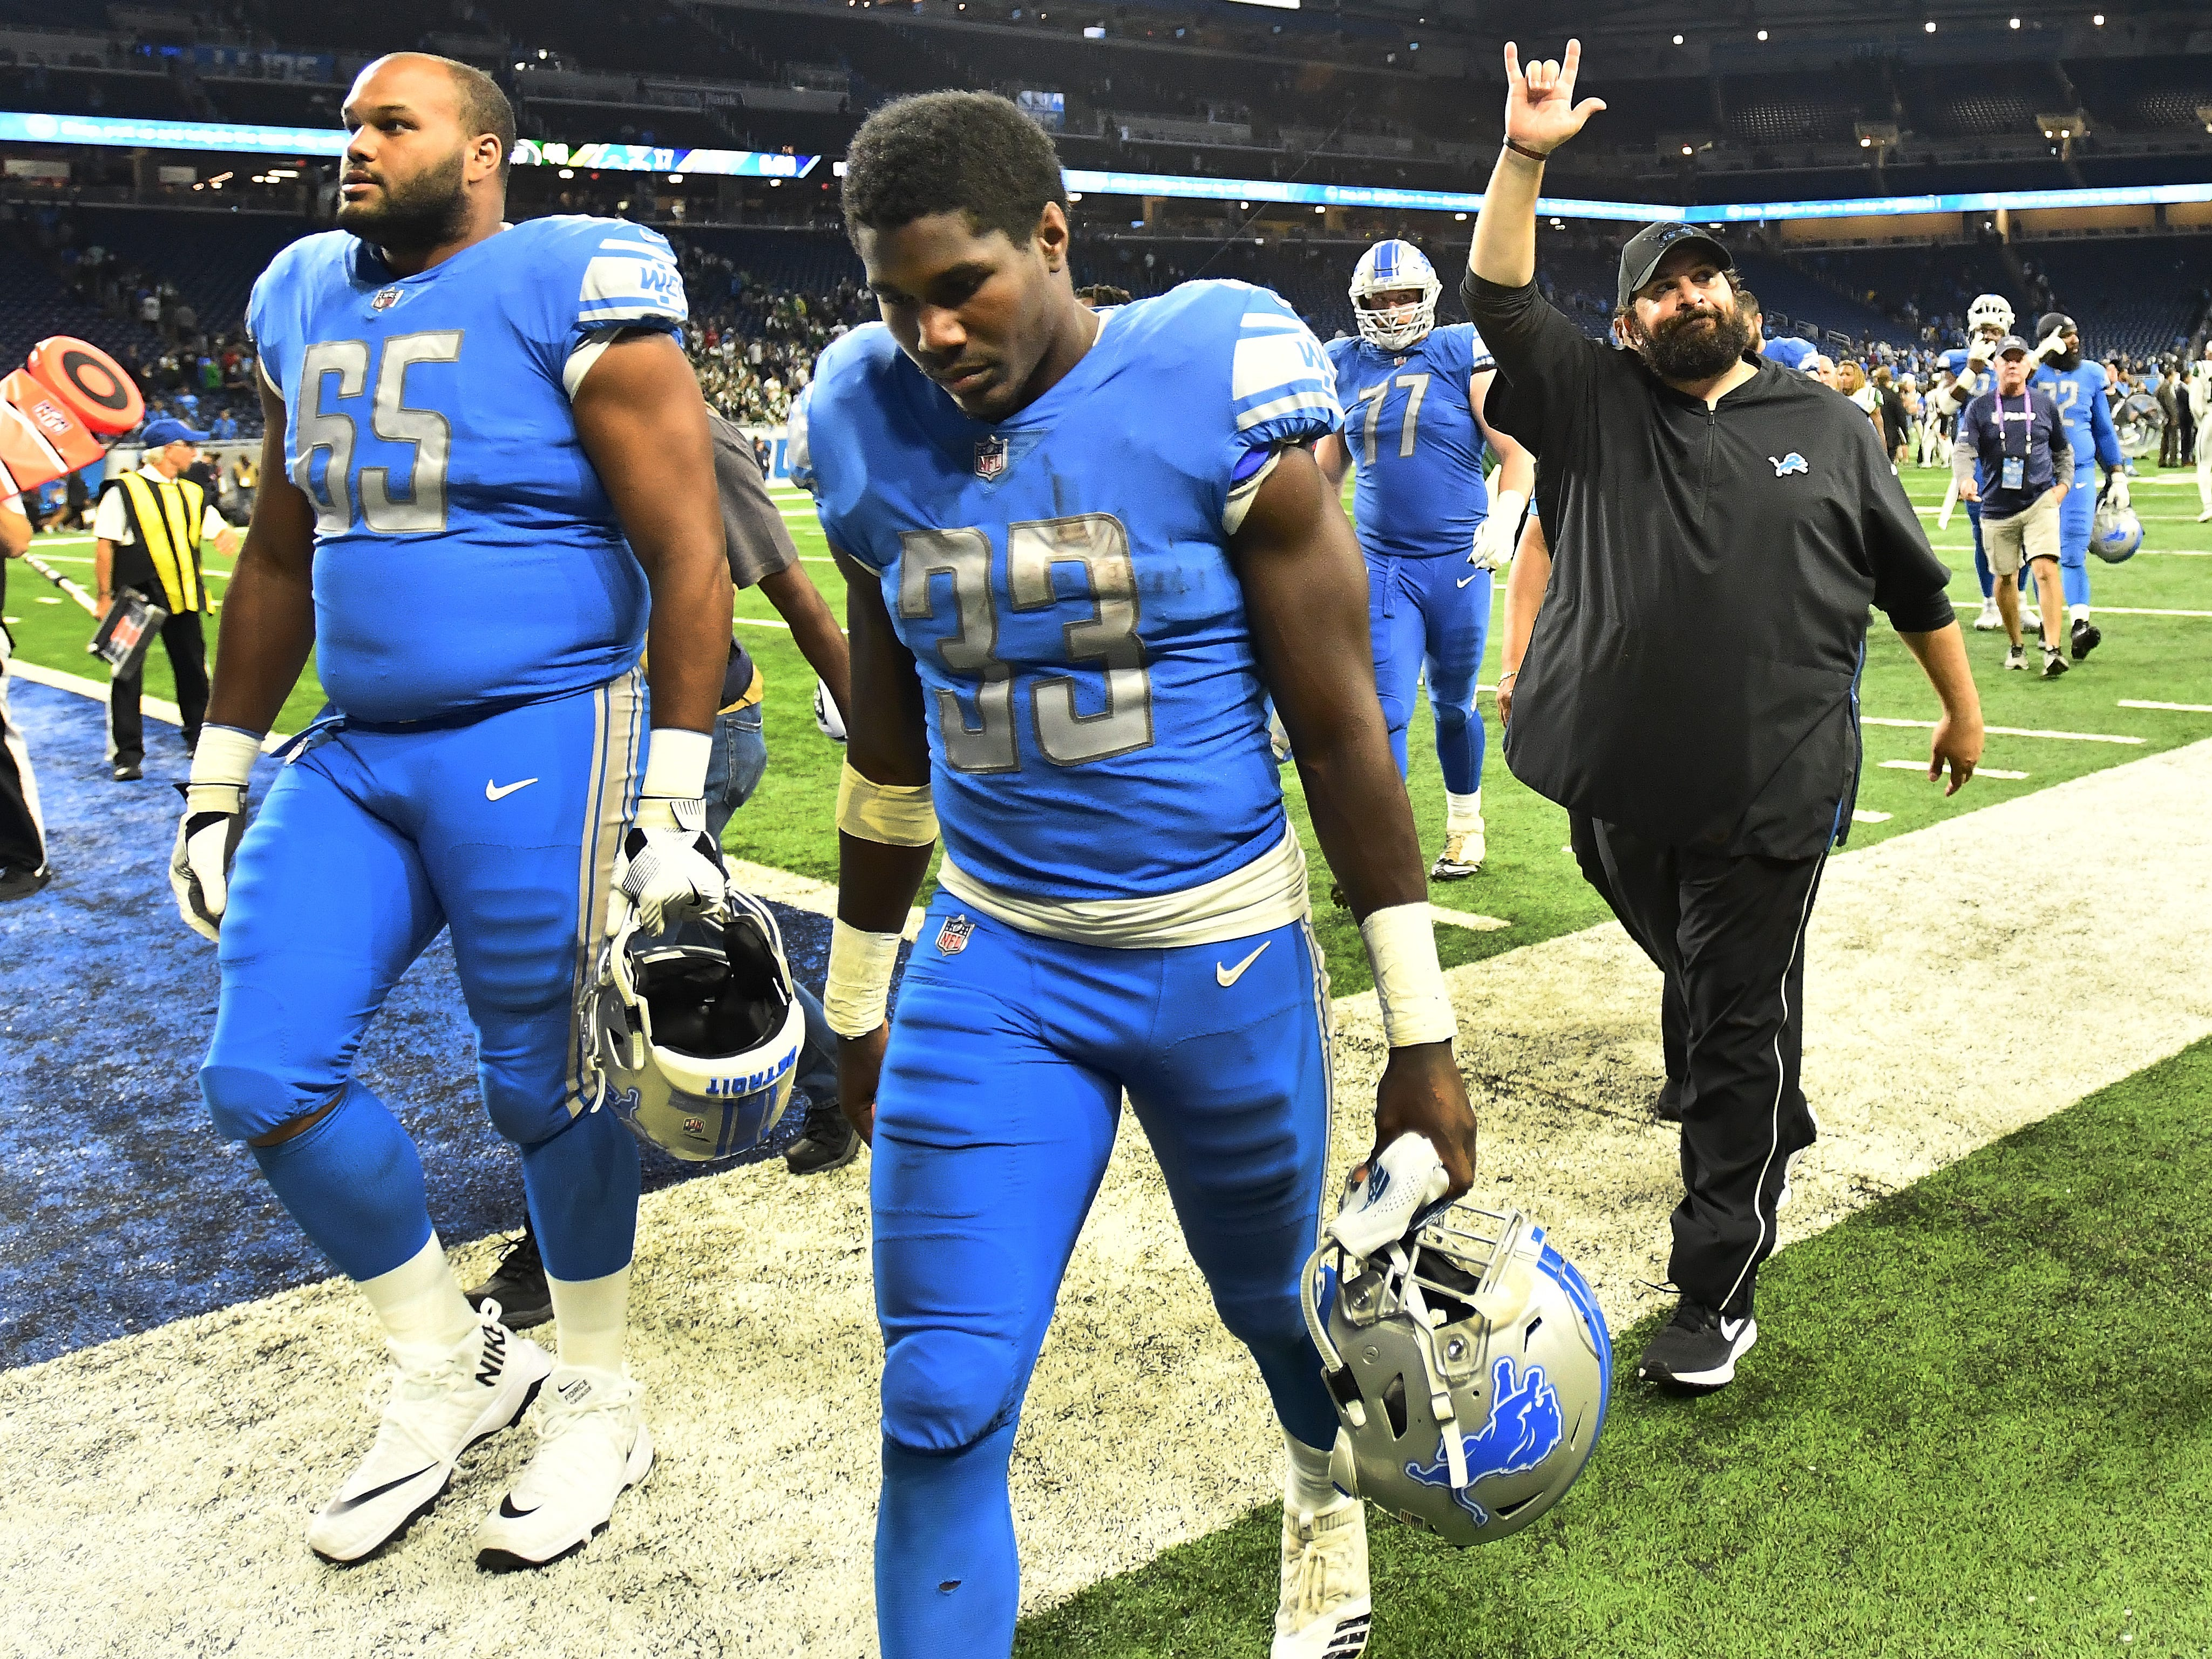 Lions rookies Tyrell Crosby and Kerryon Johnson leave the field with head coach Matt Patricia gesturing toward the stands after the 48-17 loss to the New York Jets.